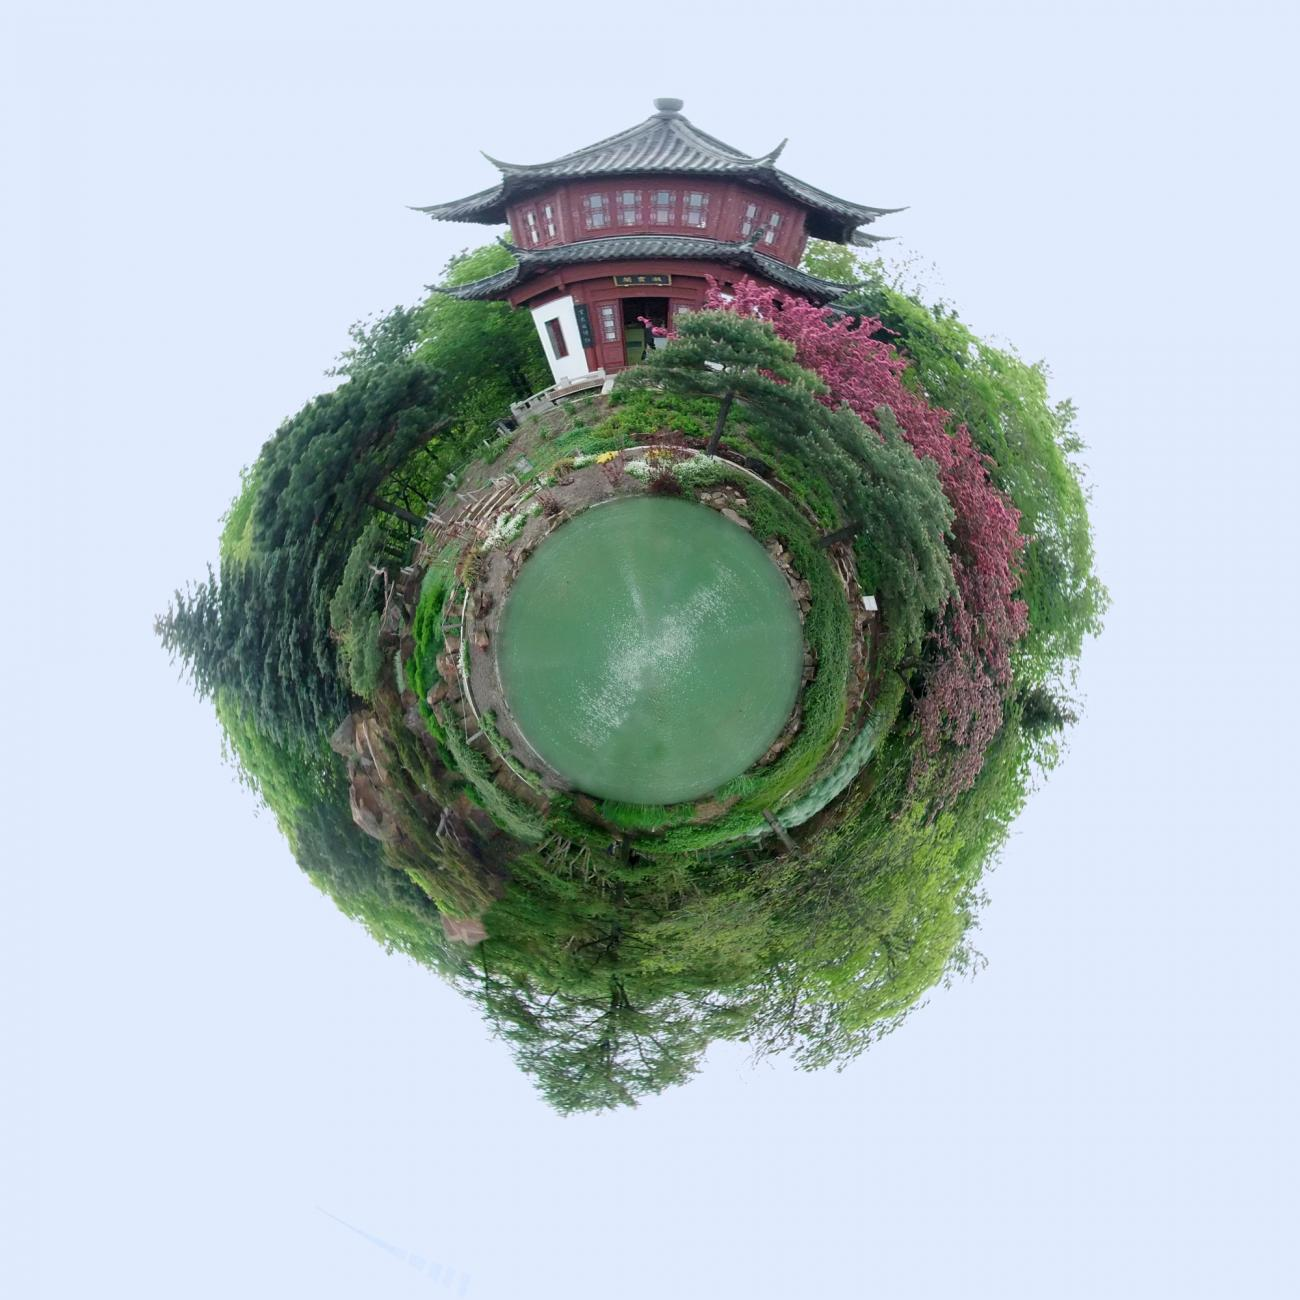 Little Planet: Chinese Garden by Luc2